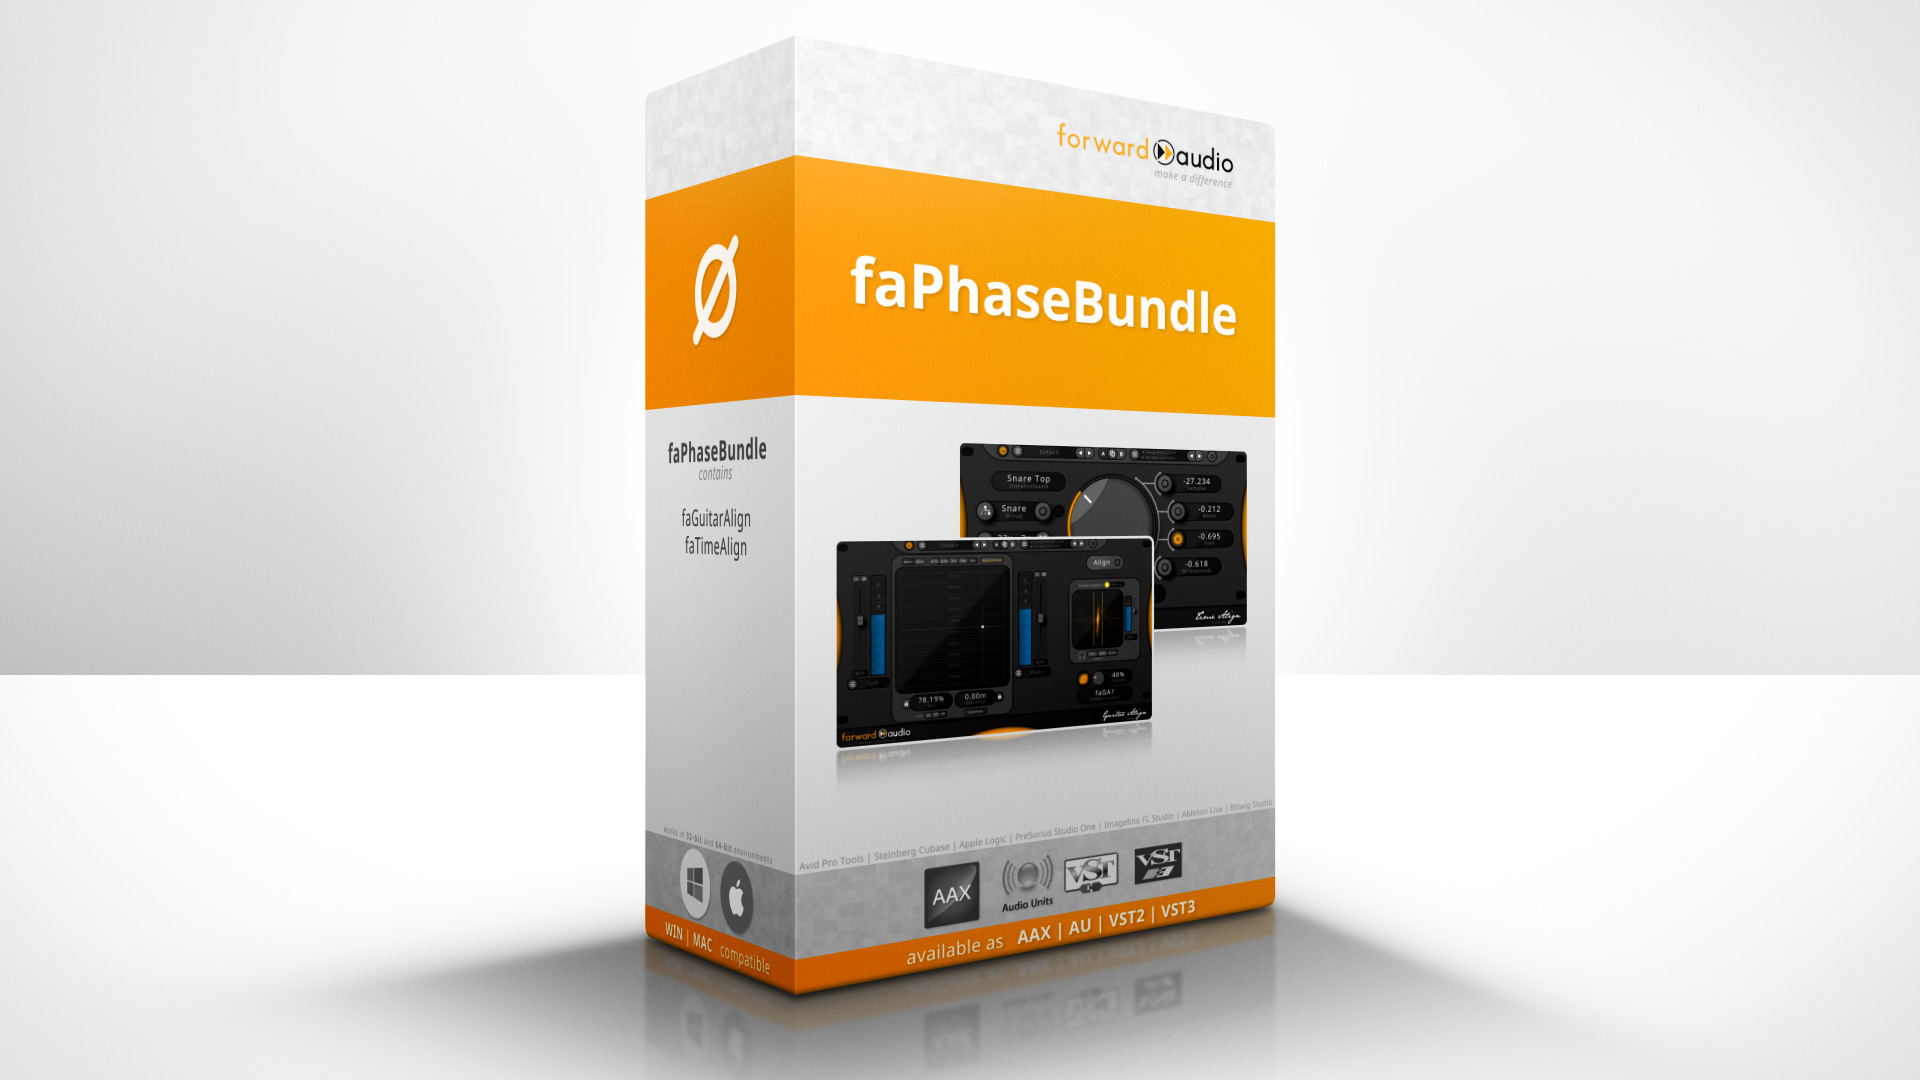 Picture of faPhase Bundle from forward audio